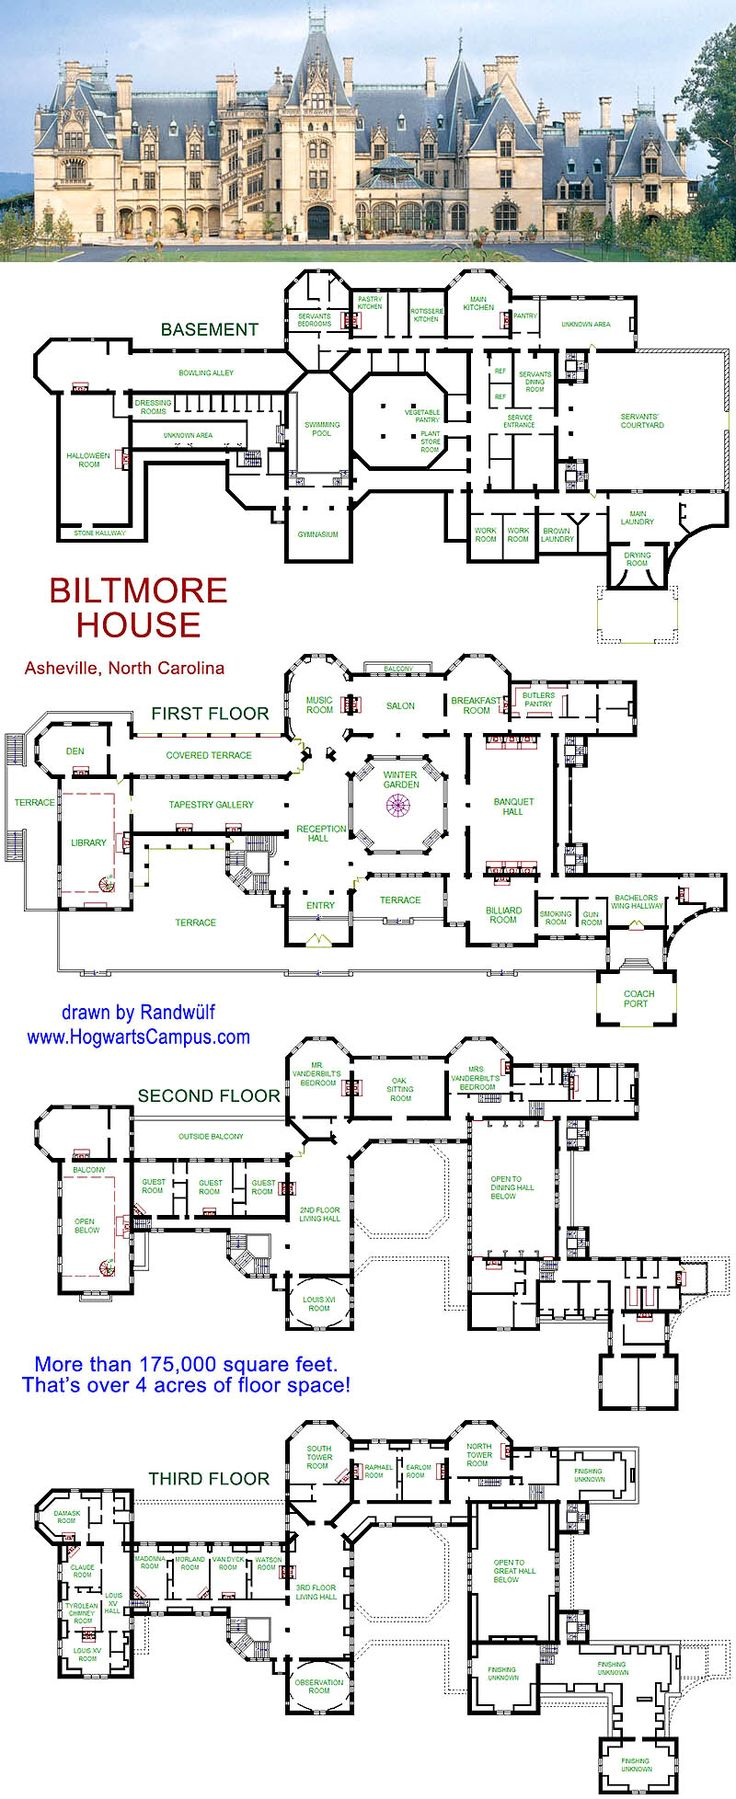 Biltmore house asheville nc pillars of architectural House plans nc